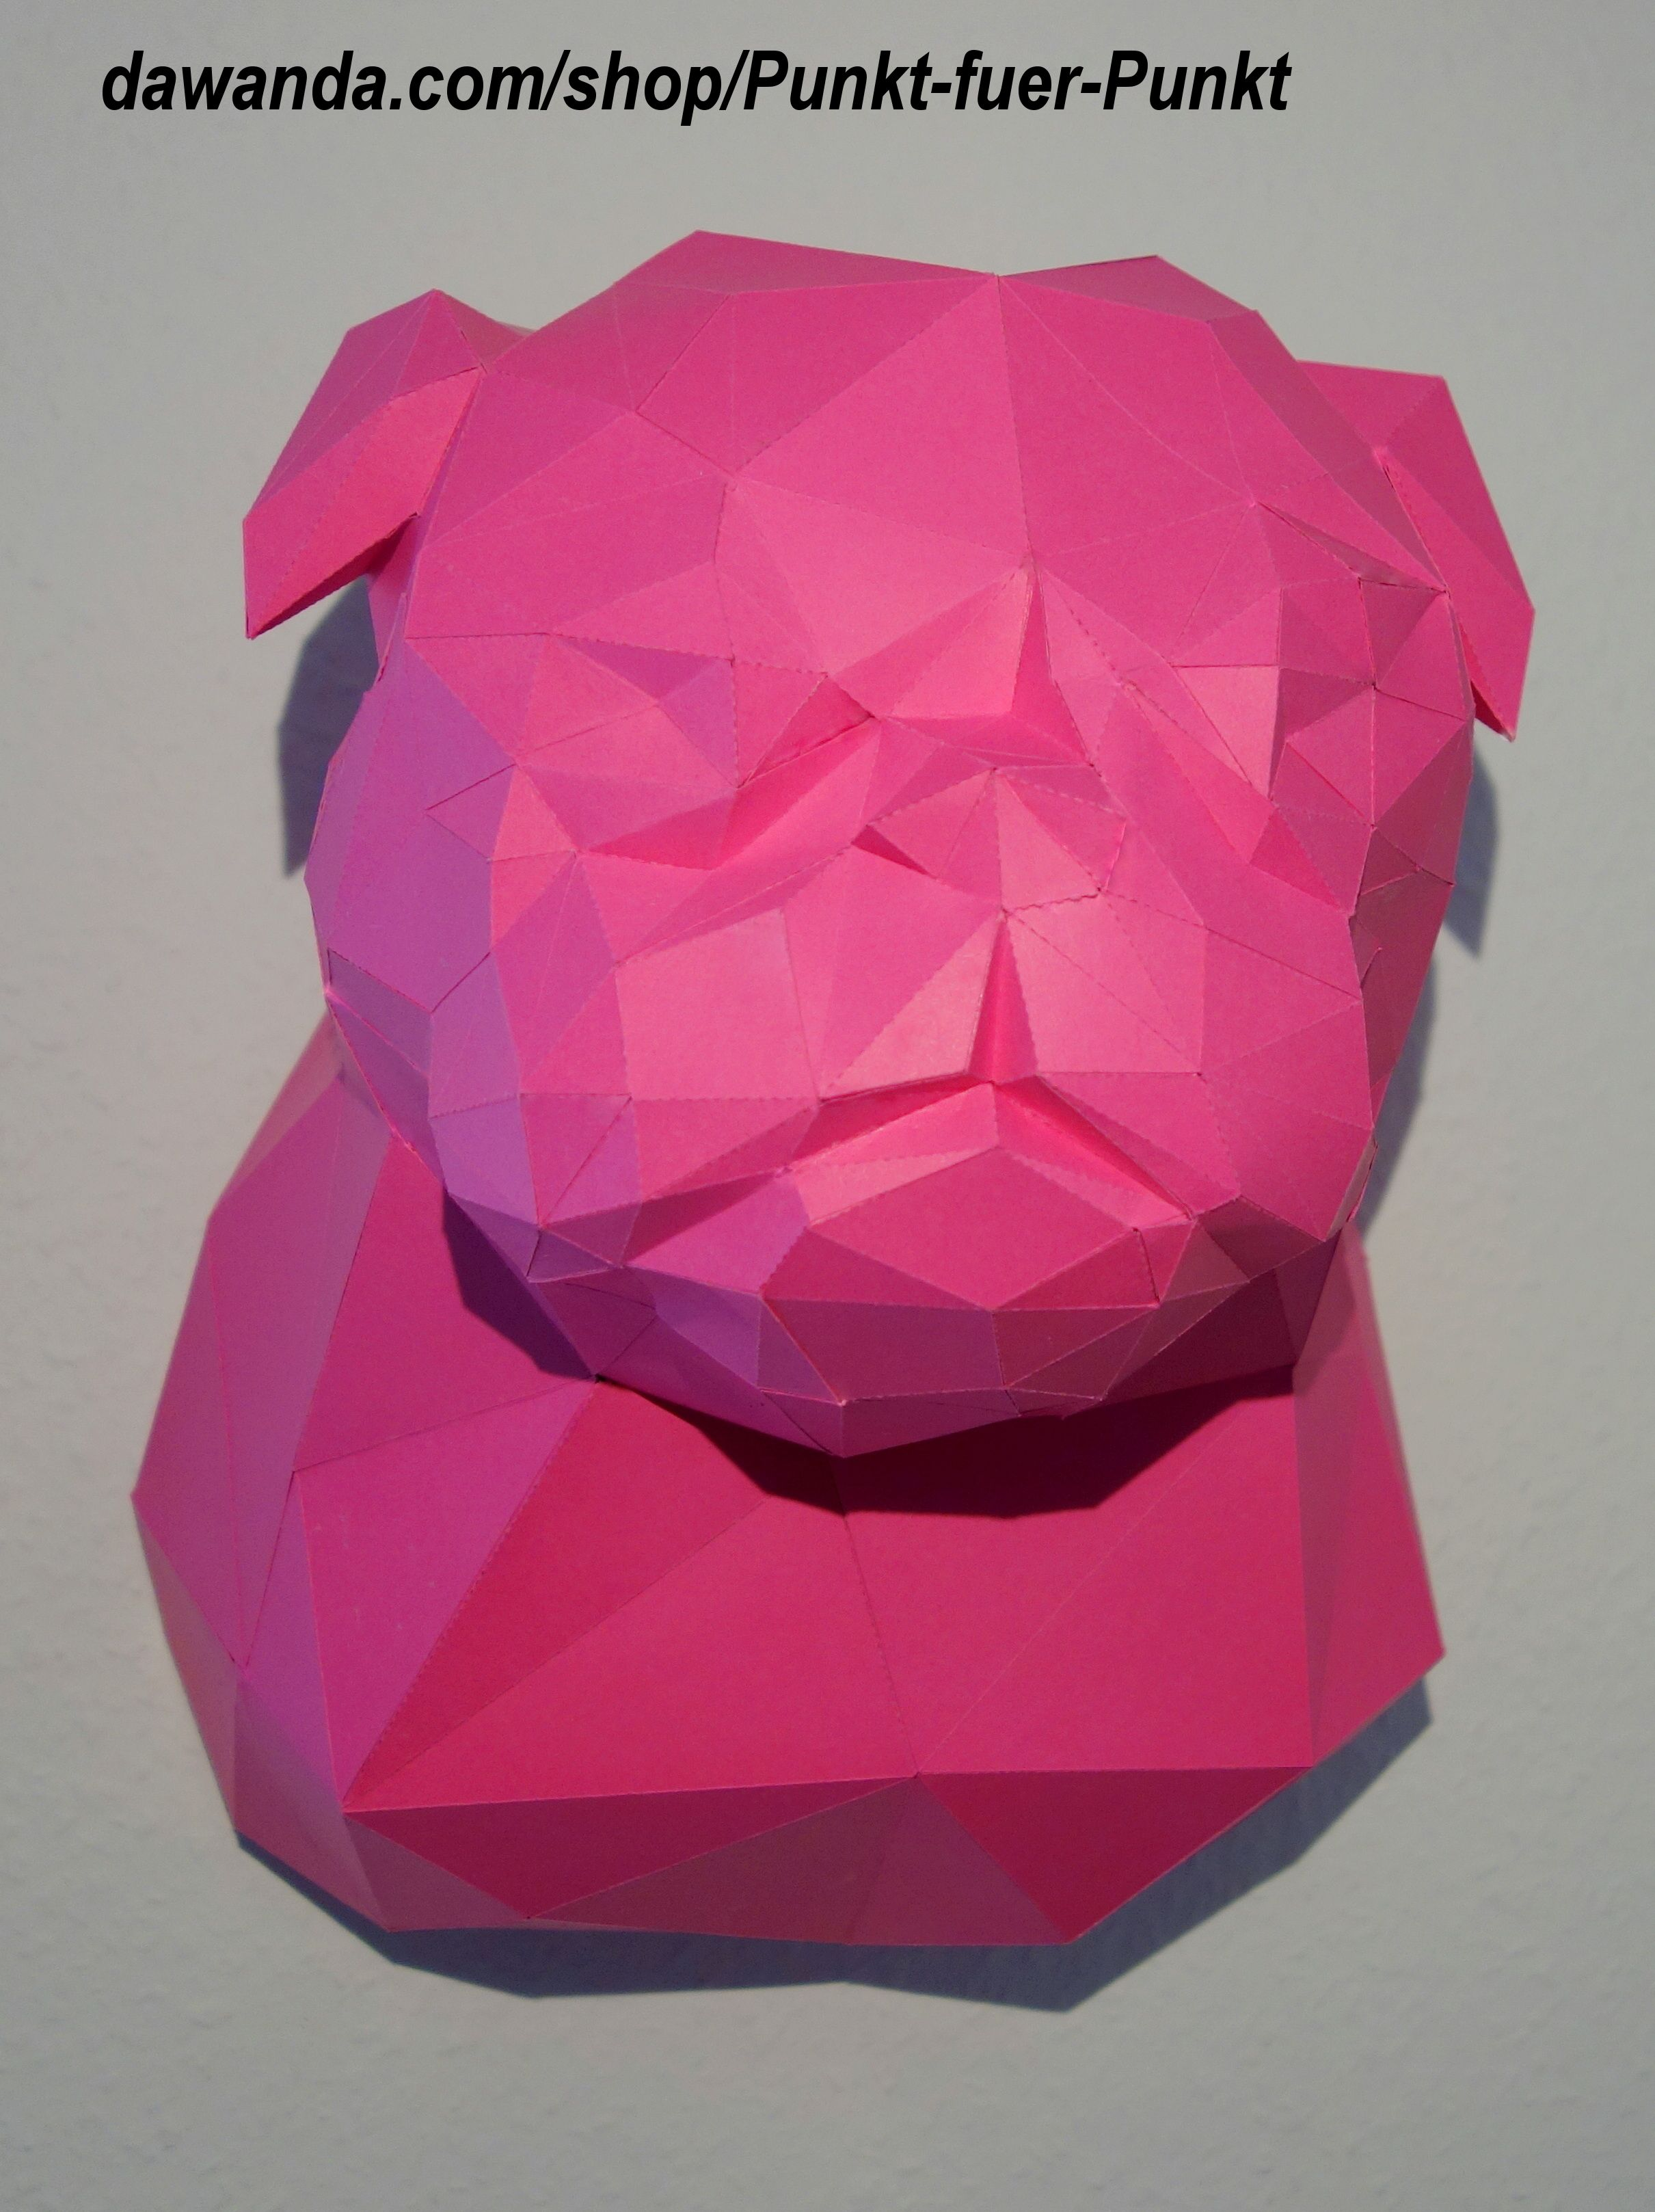 Pug DIY Do It Yourself Papercraft Papertrophy Origami Trophy Wallart